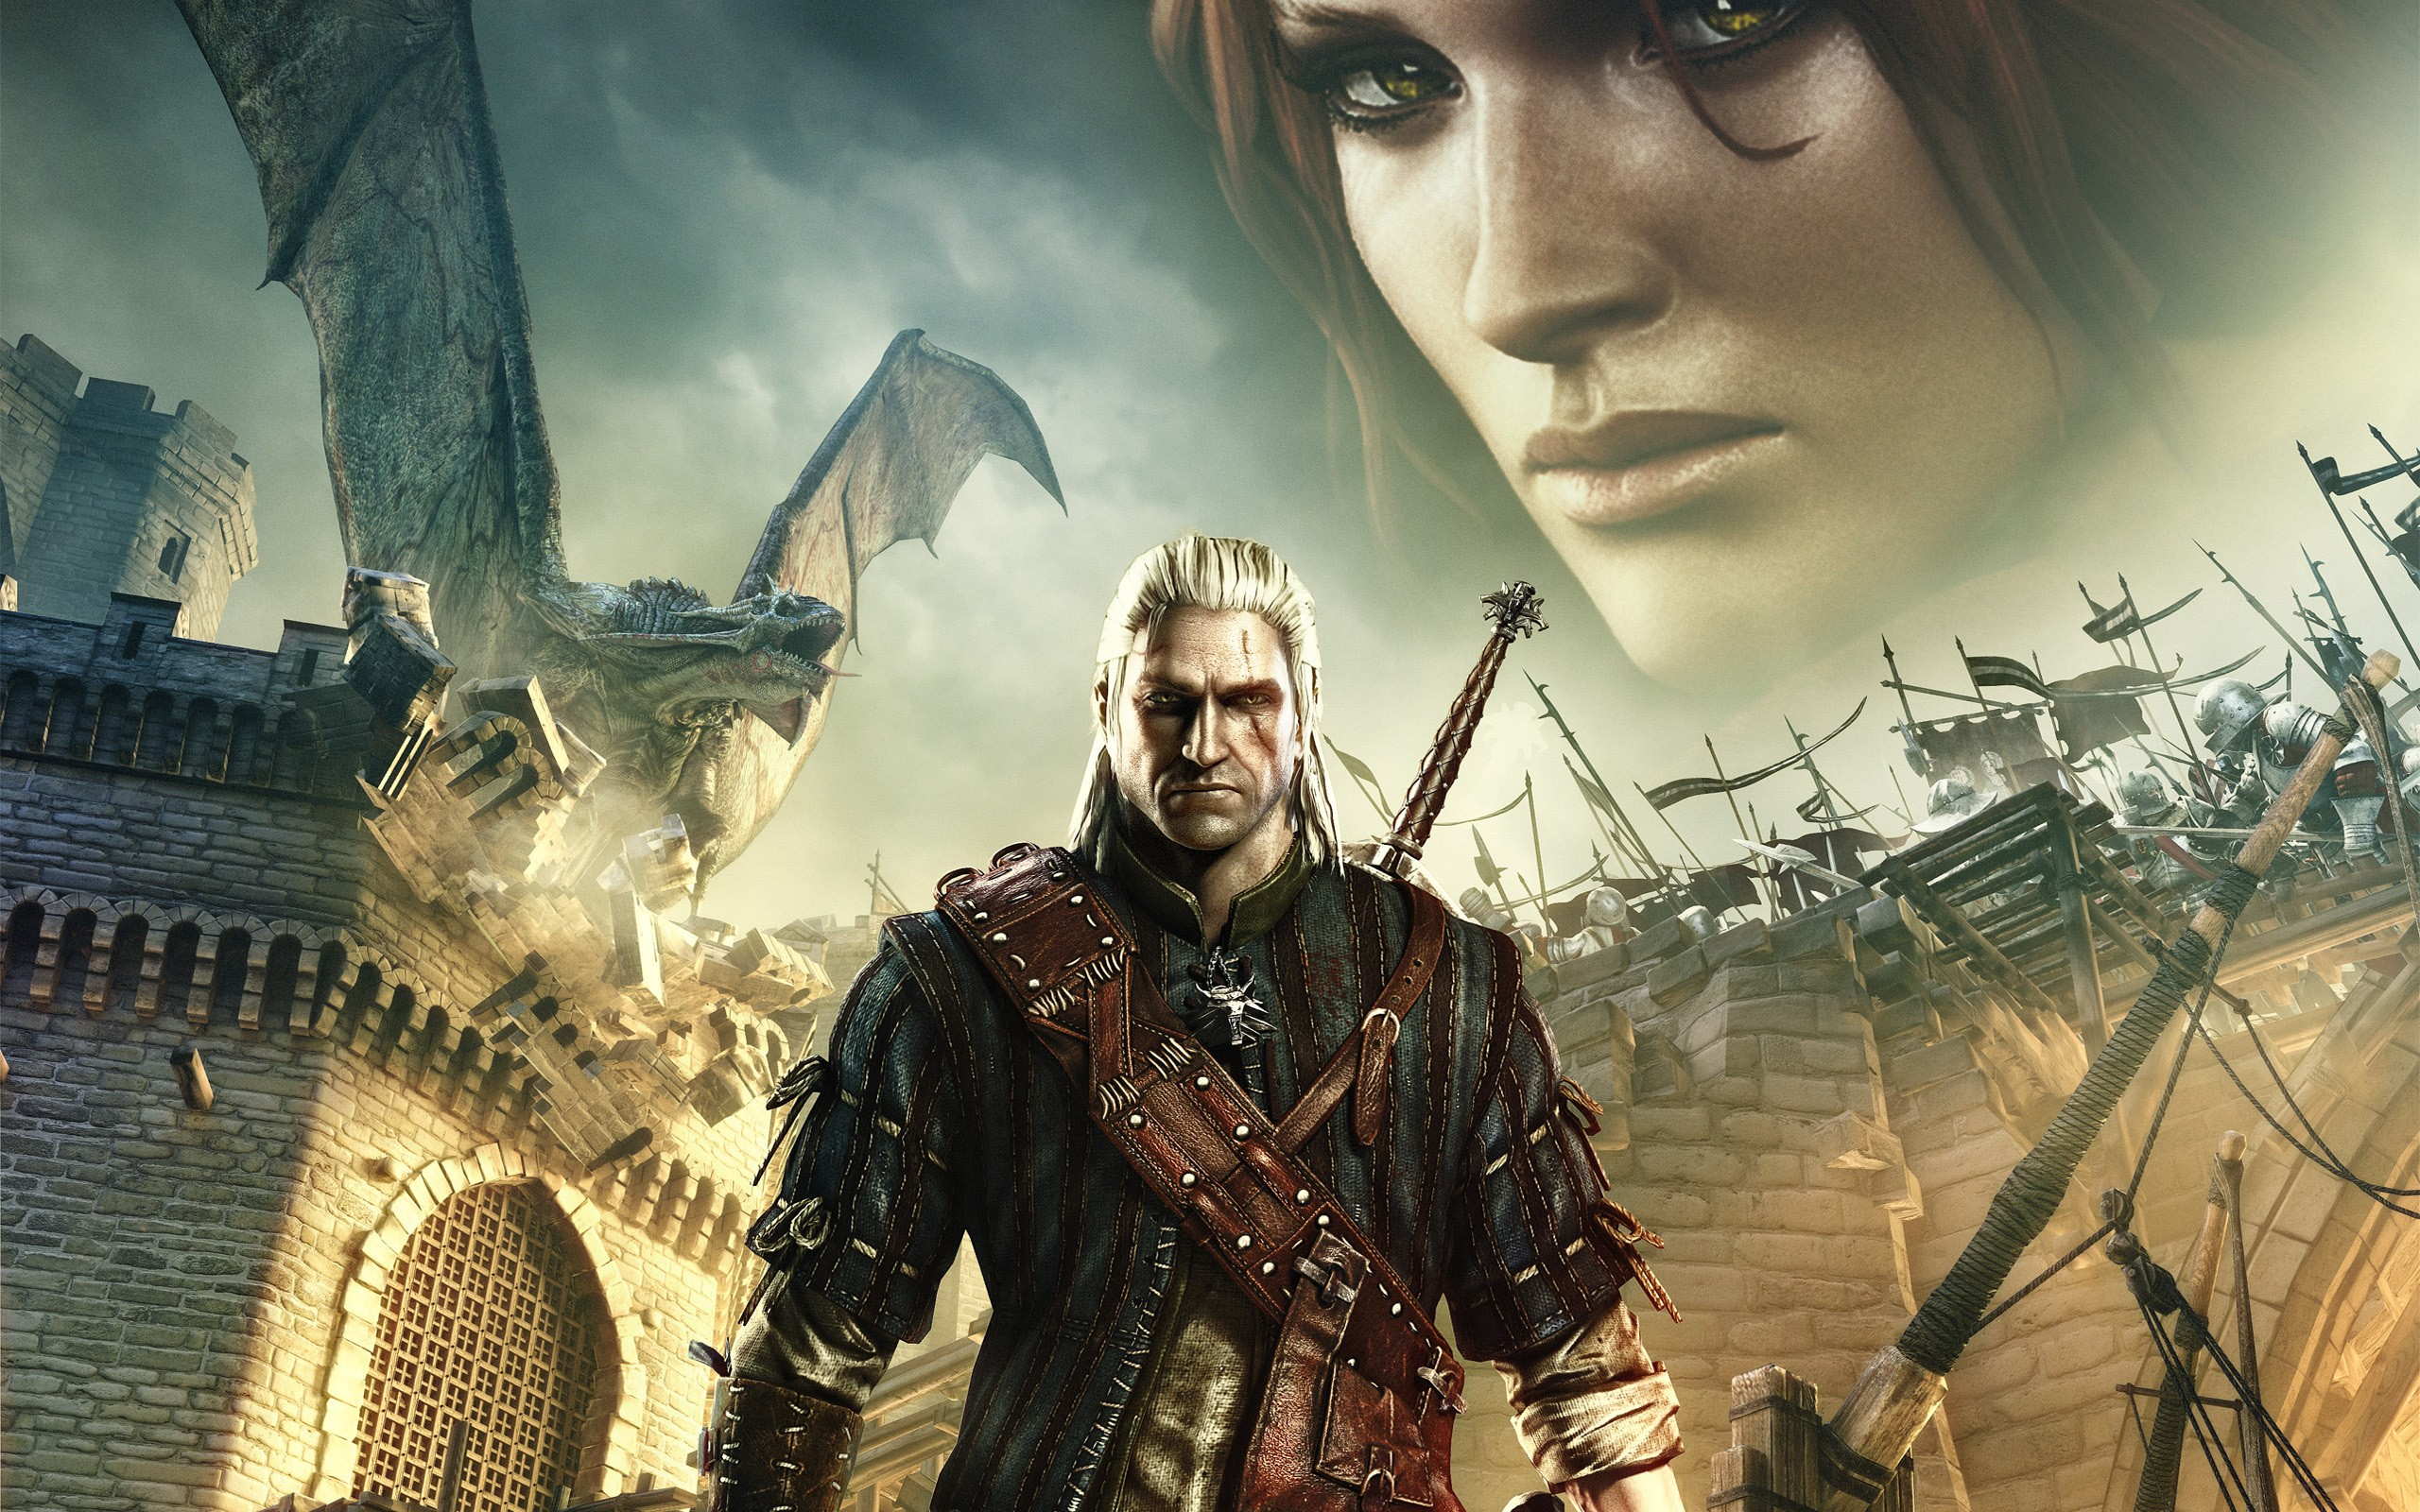 264 The Witcher 2 Assassins of Kings images and pictures 2019 2560x1600